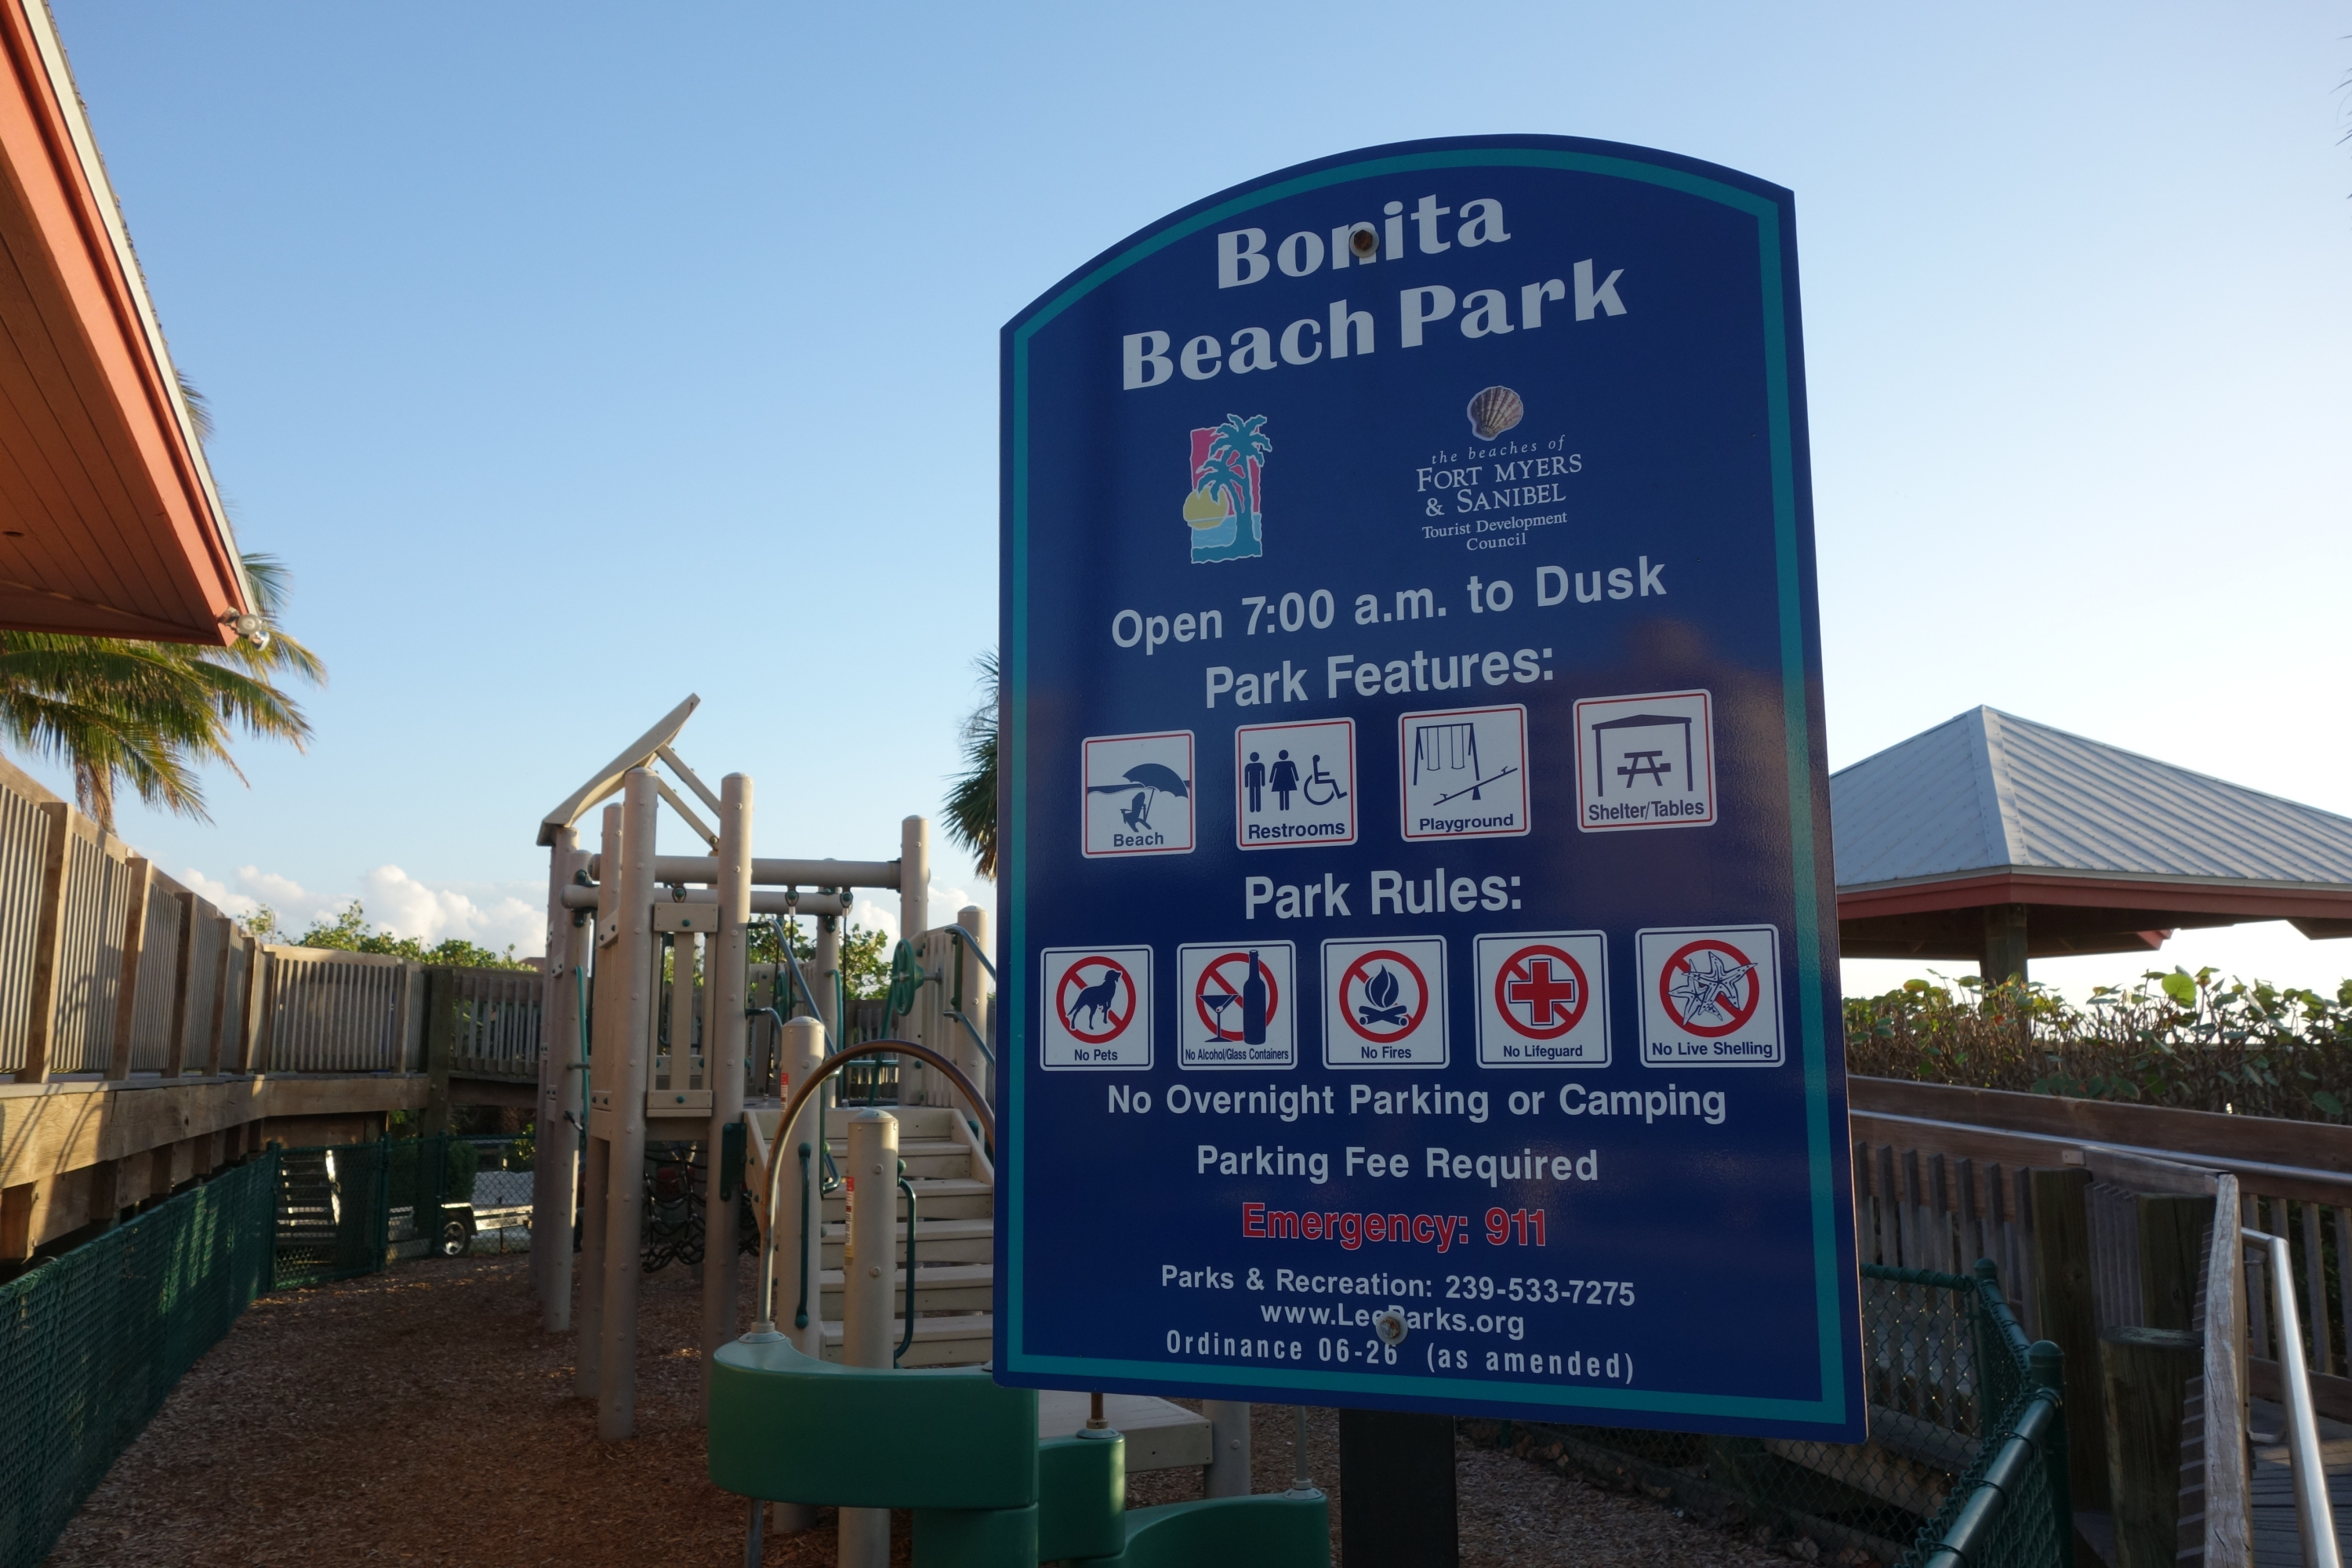 Der Bonita Beach Park in Florida